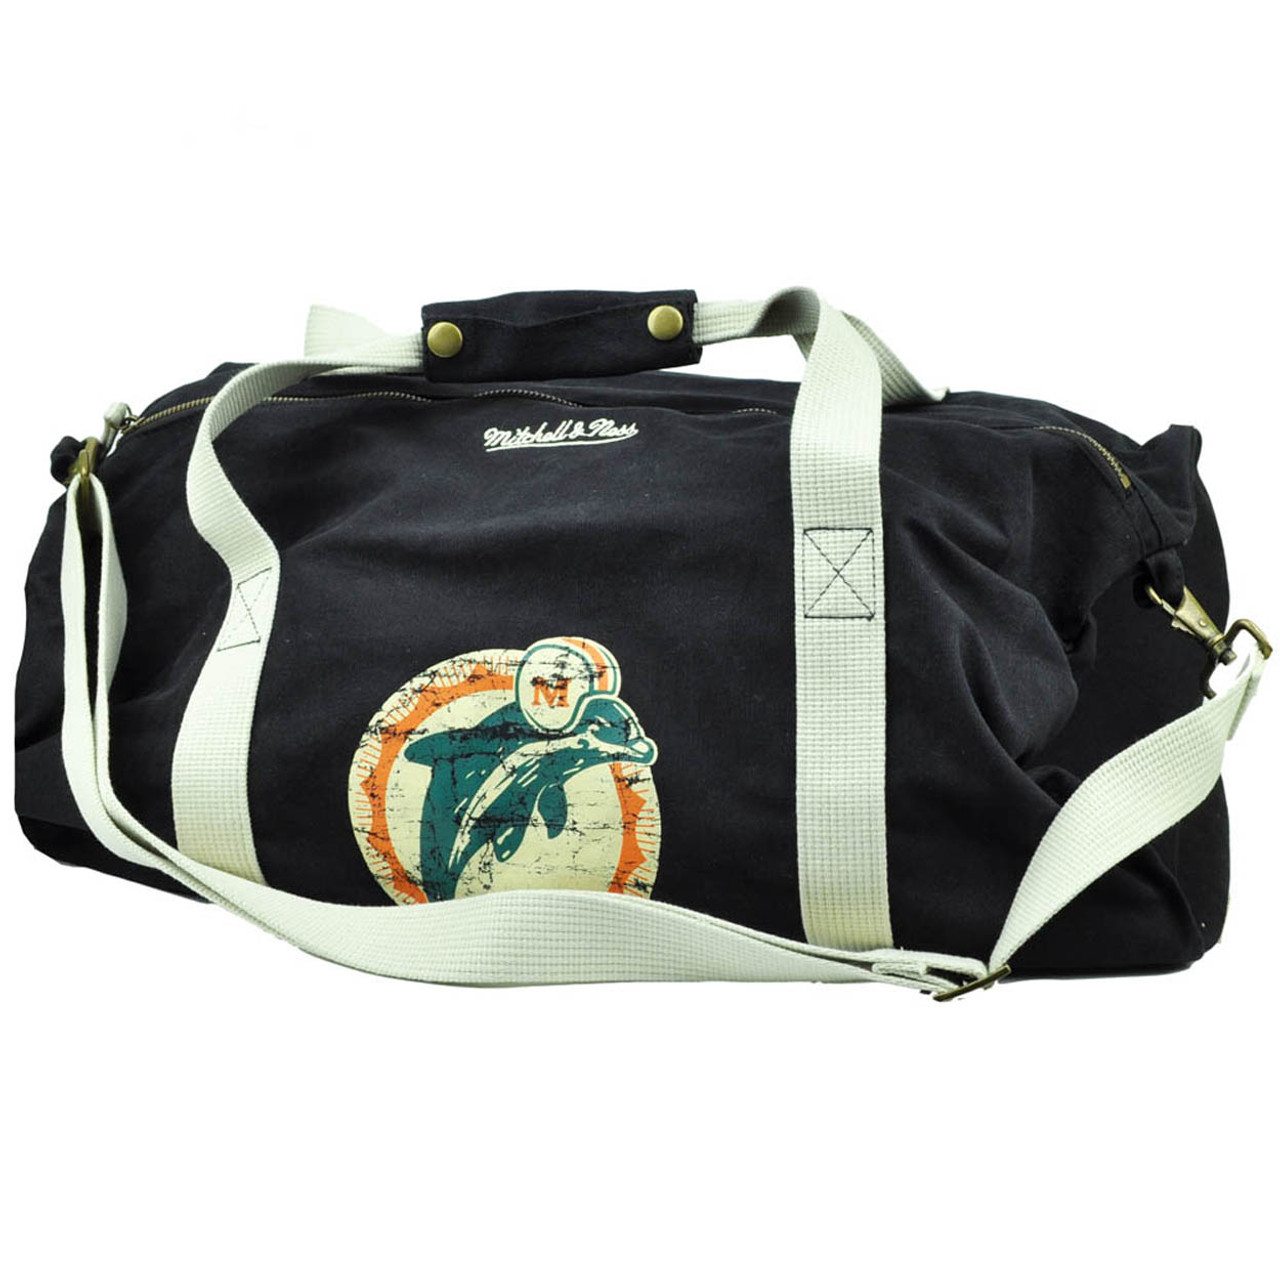 ac0771c537 NFL Mitchell Ness Miami Dolphins Duffel Black Bag Travel Gym Washed  Distressed